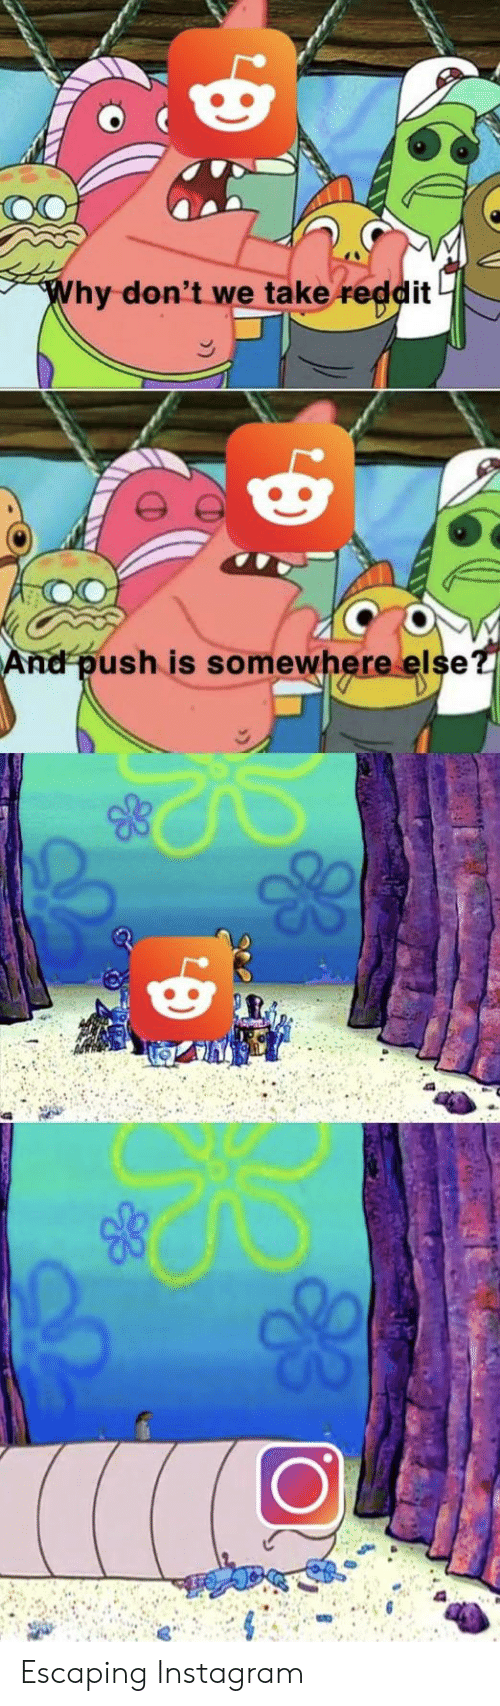 Instagram spongebob and push hy dont we take it and push